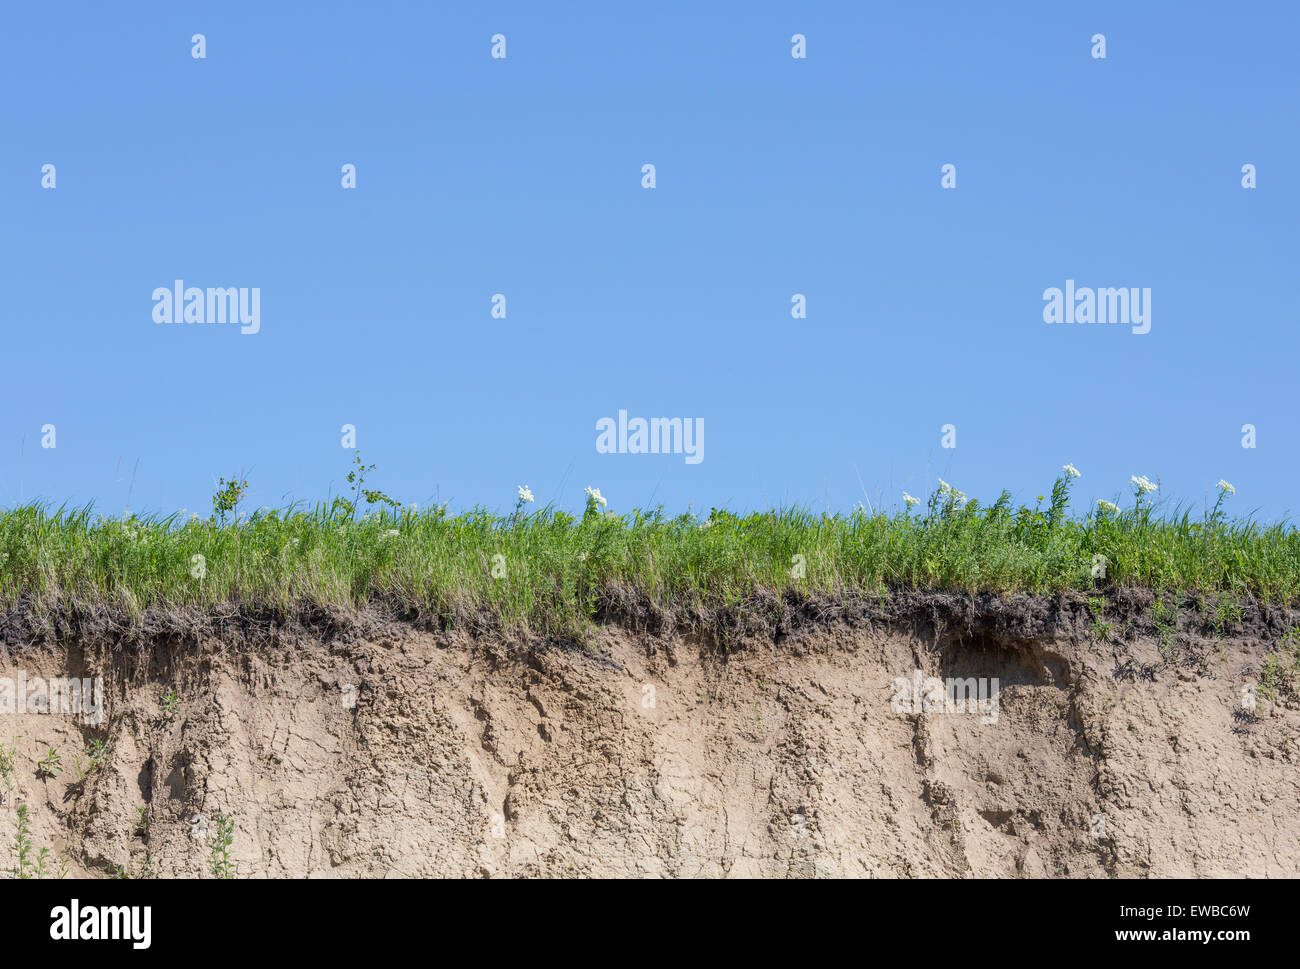 Ravine or gully cut with soil, grass and blue sky - Stock Image